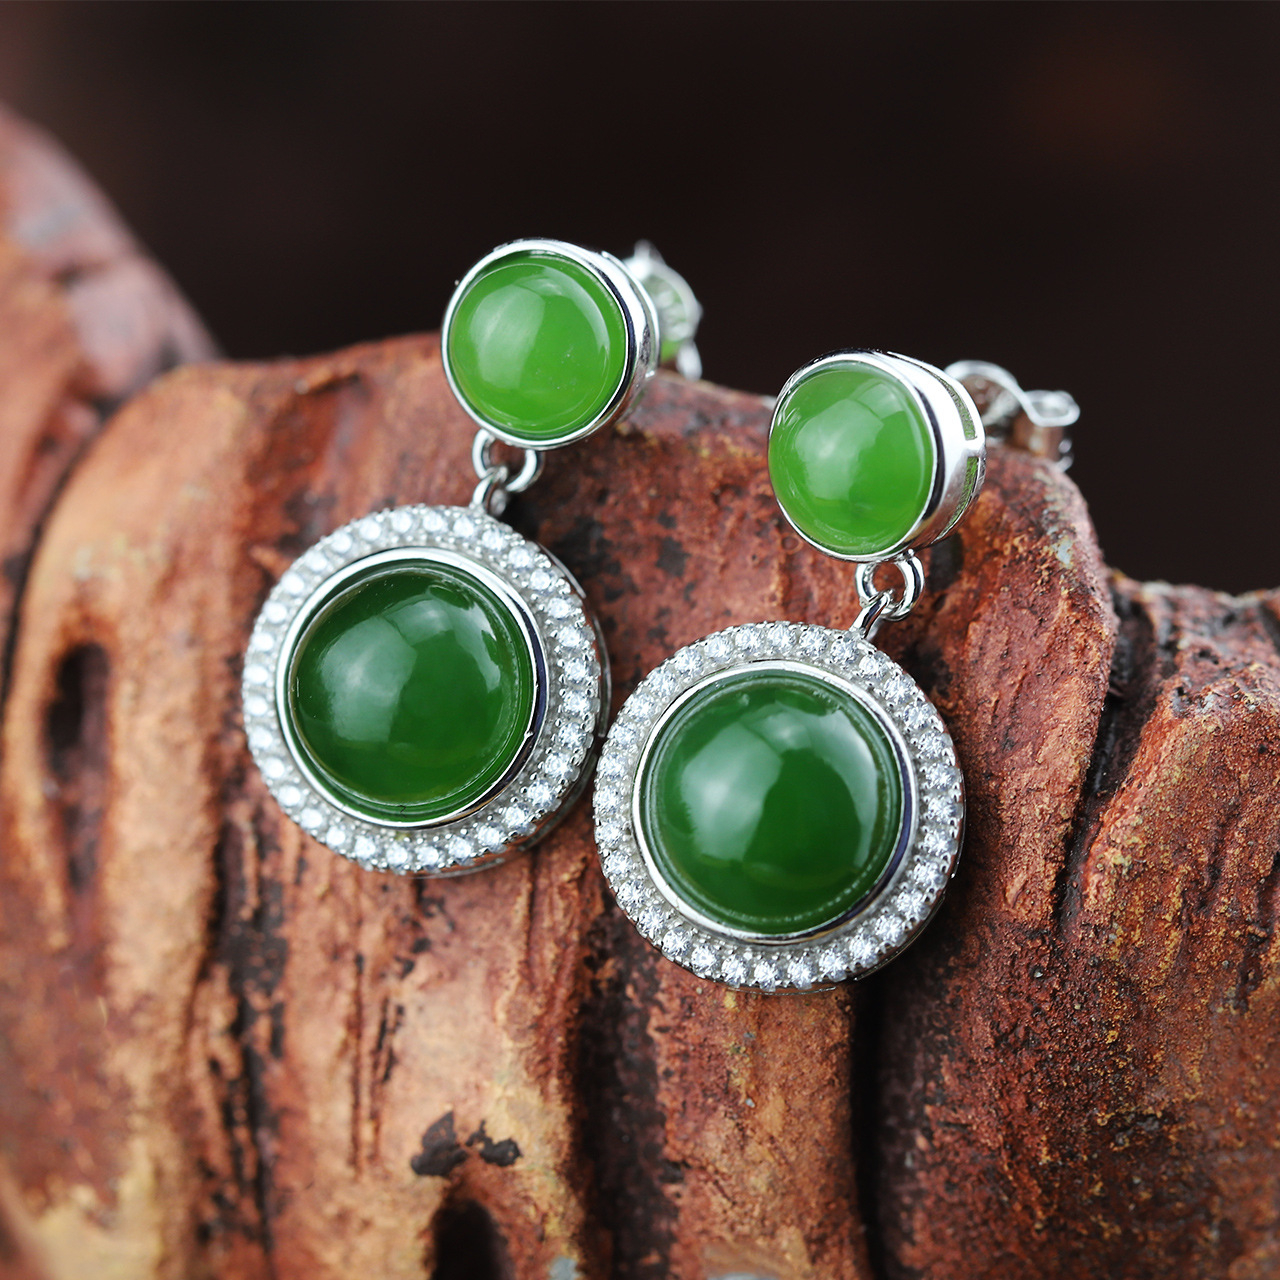 Character Silver Product S925 Pure Silver Jewelry Fashion Earrings Wholesale Handmade Lady Hetian Jade Earrings character silver product s925 pure silver new mark antique watch authentic thai contracted female model